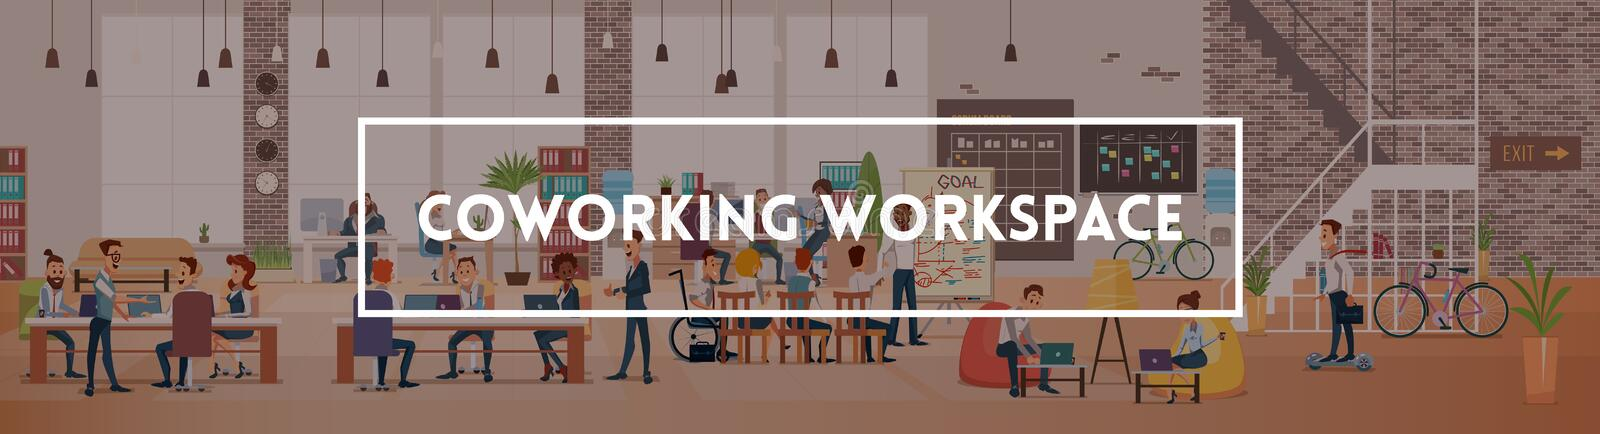 People Work in Office. Coworking Workspace. Vector stock illustration